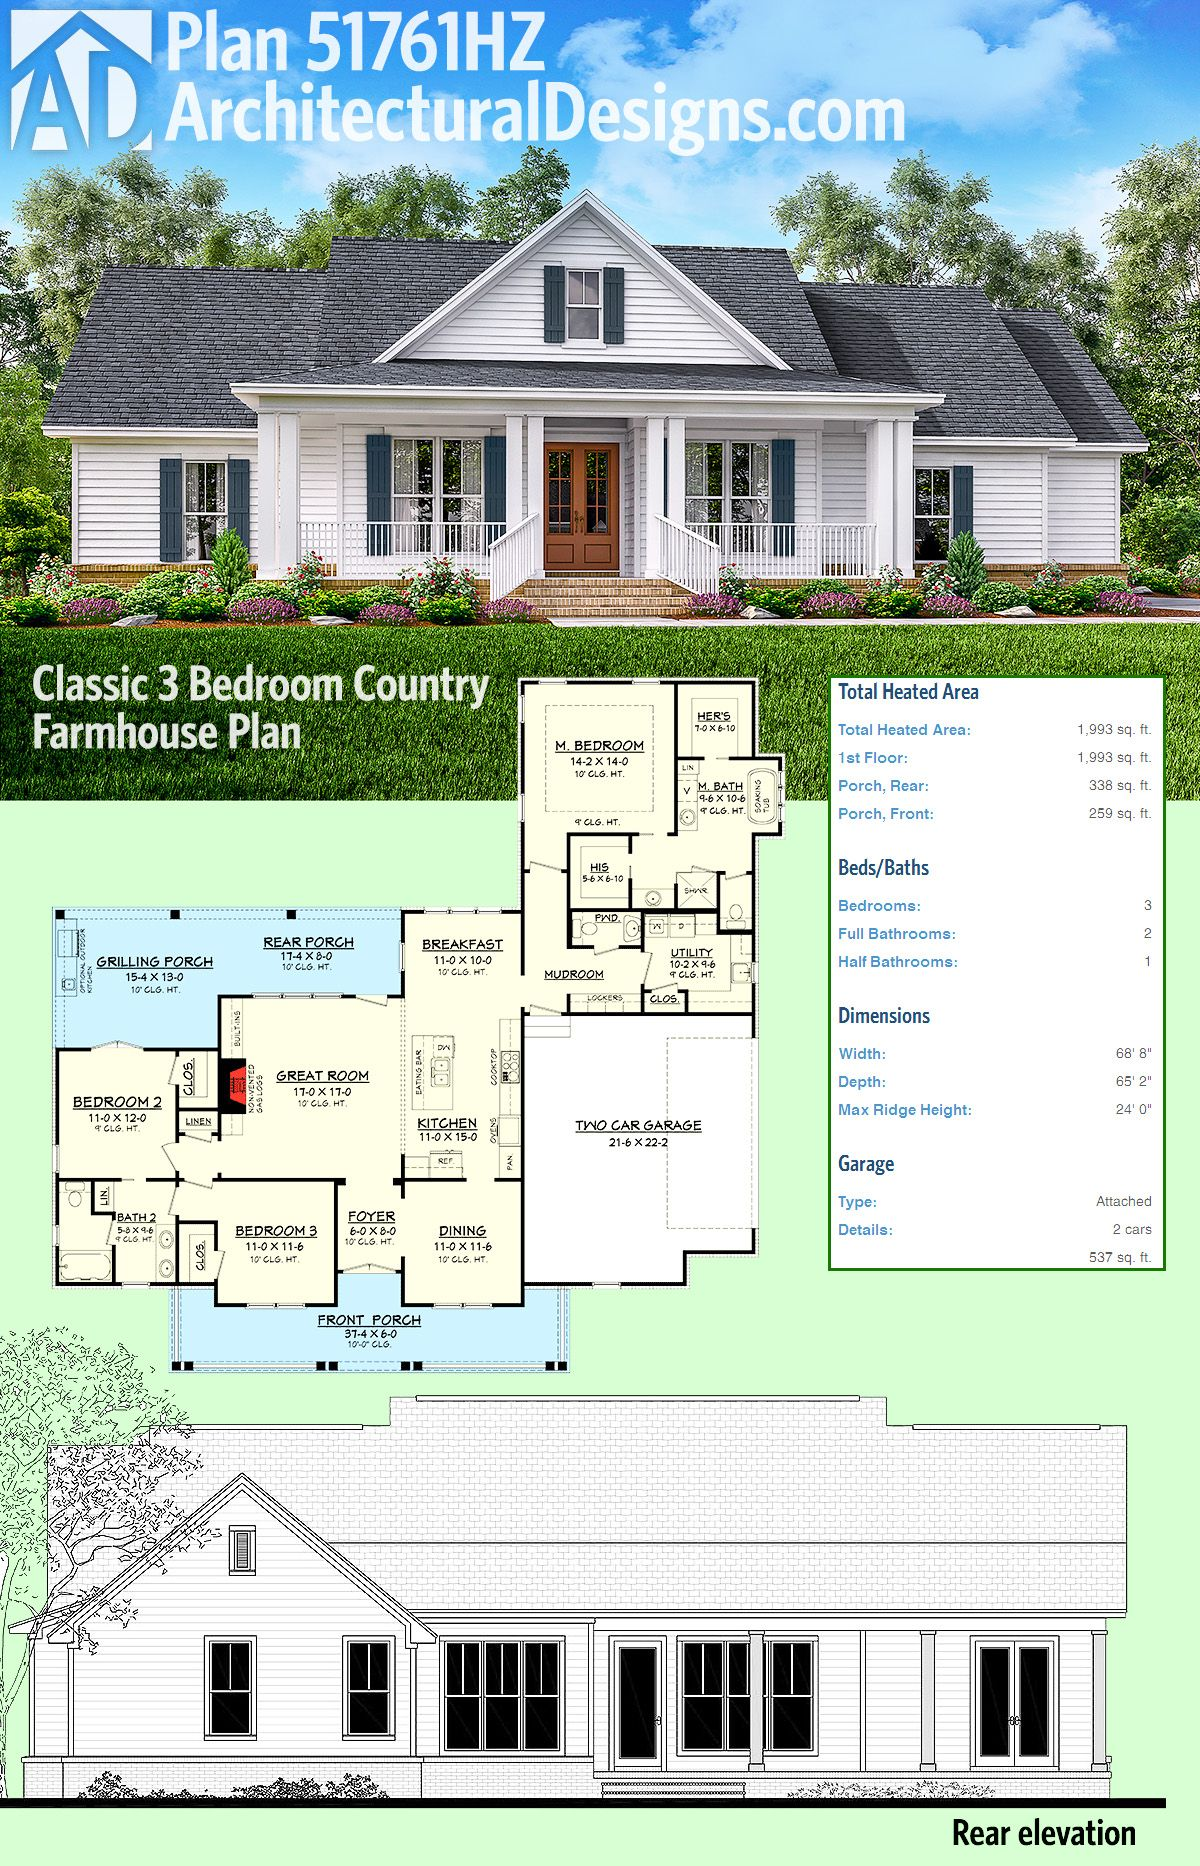 Introducing architectural designs house plan 51761hz for Architectural designs farmhouse